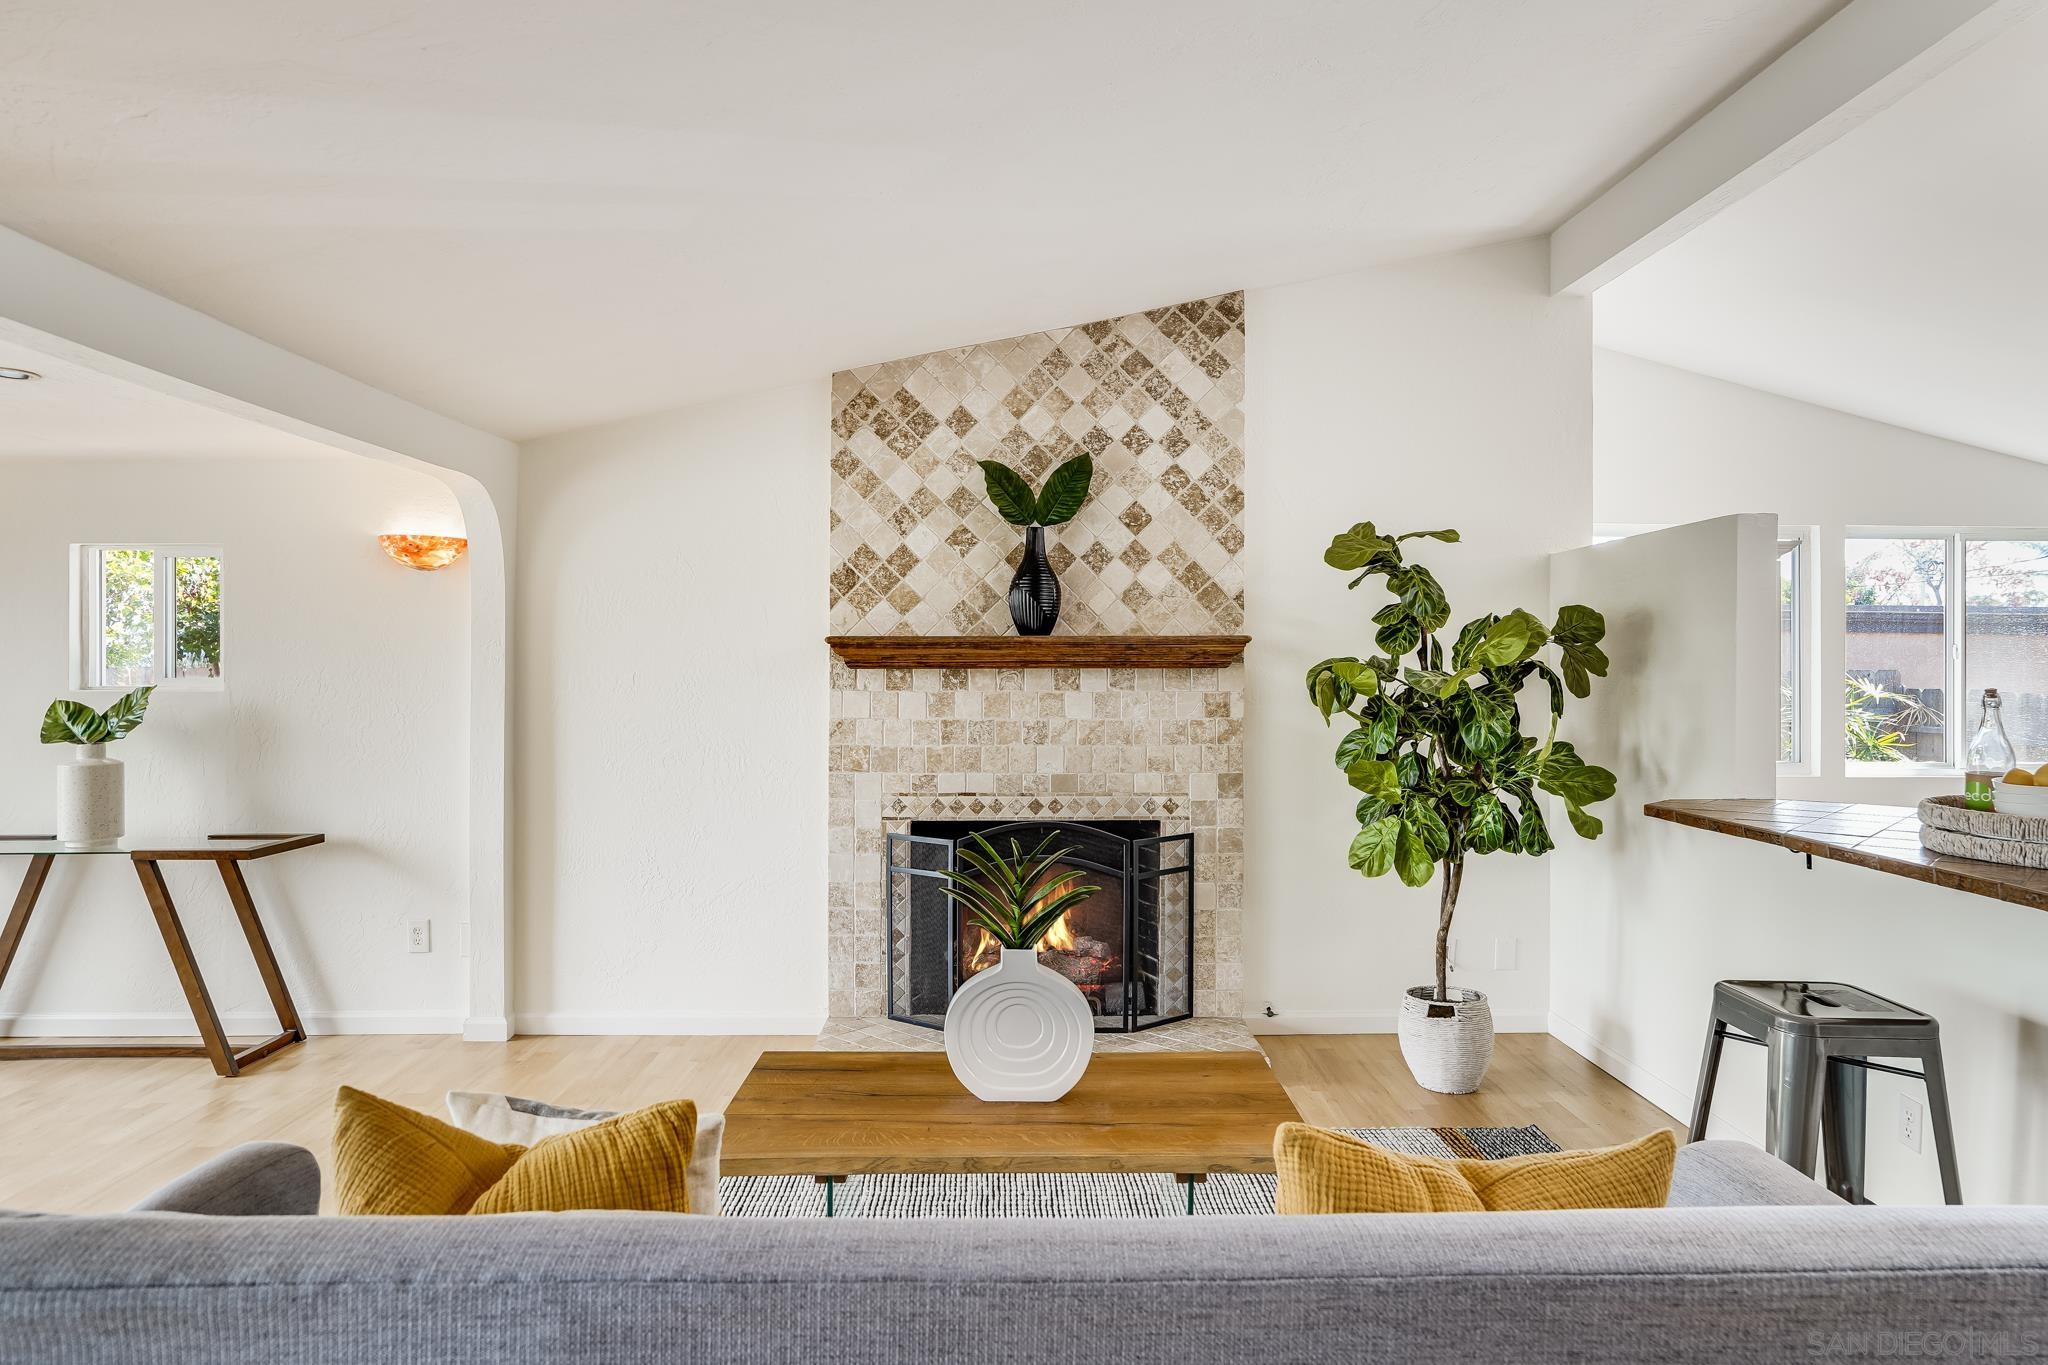 Private House With Fireplace